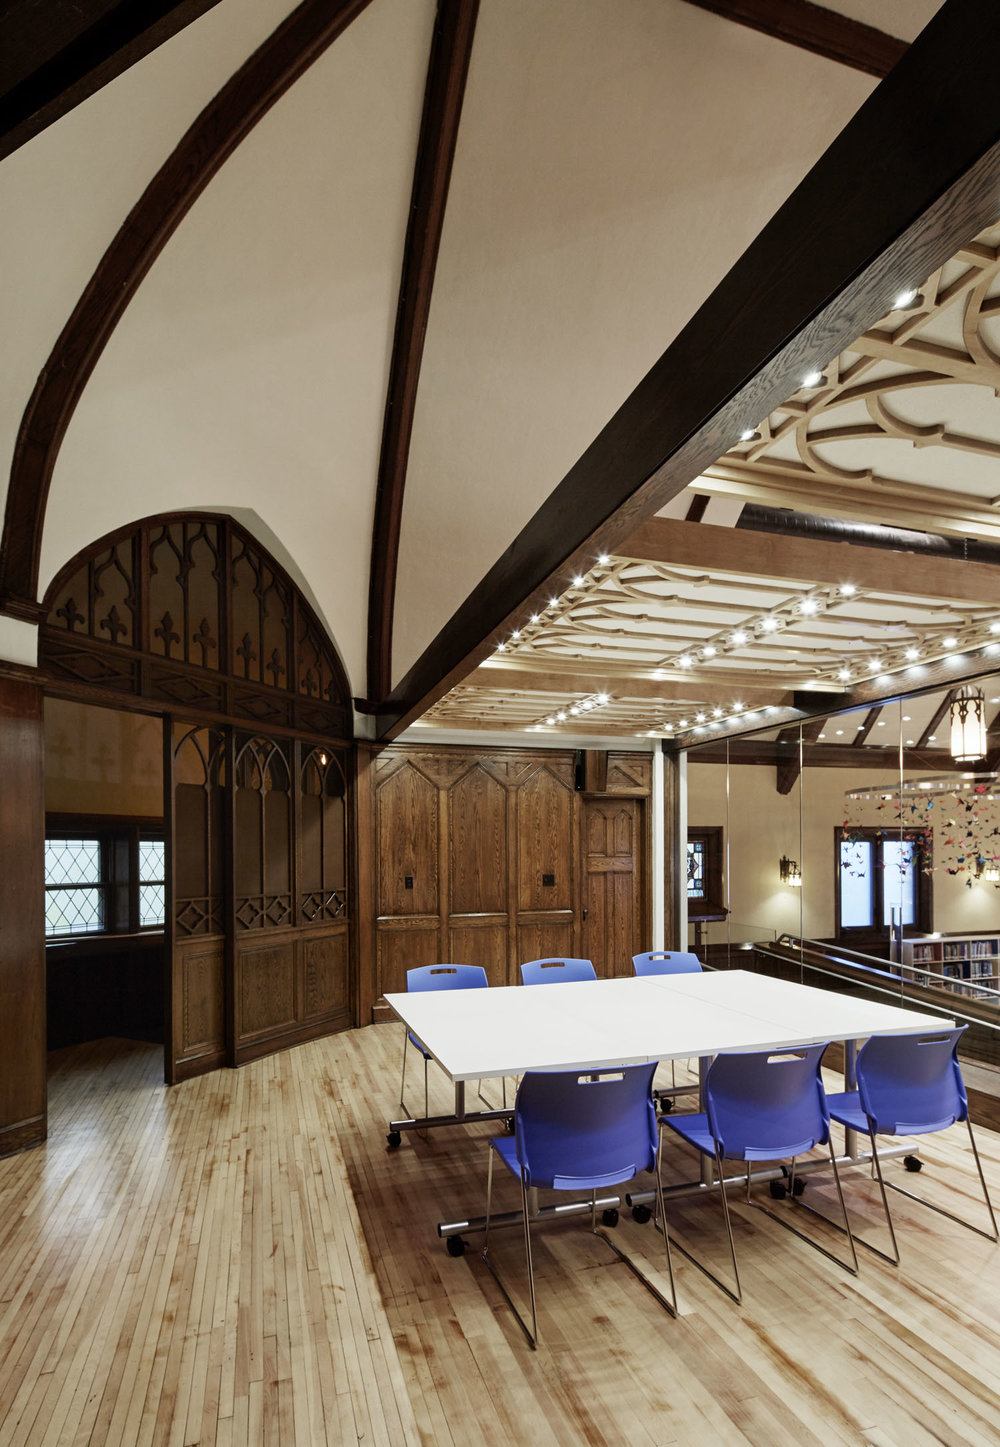 houdinidesign_ARCHITECTS_Kentville Library_Kentville_Annapolis Valley_Adaptive_Reuse_Church_Renovation_Community Room_02.jpg